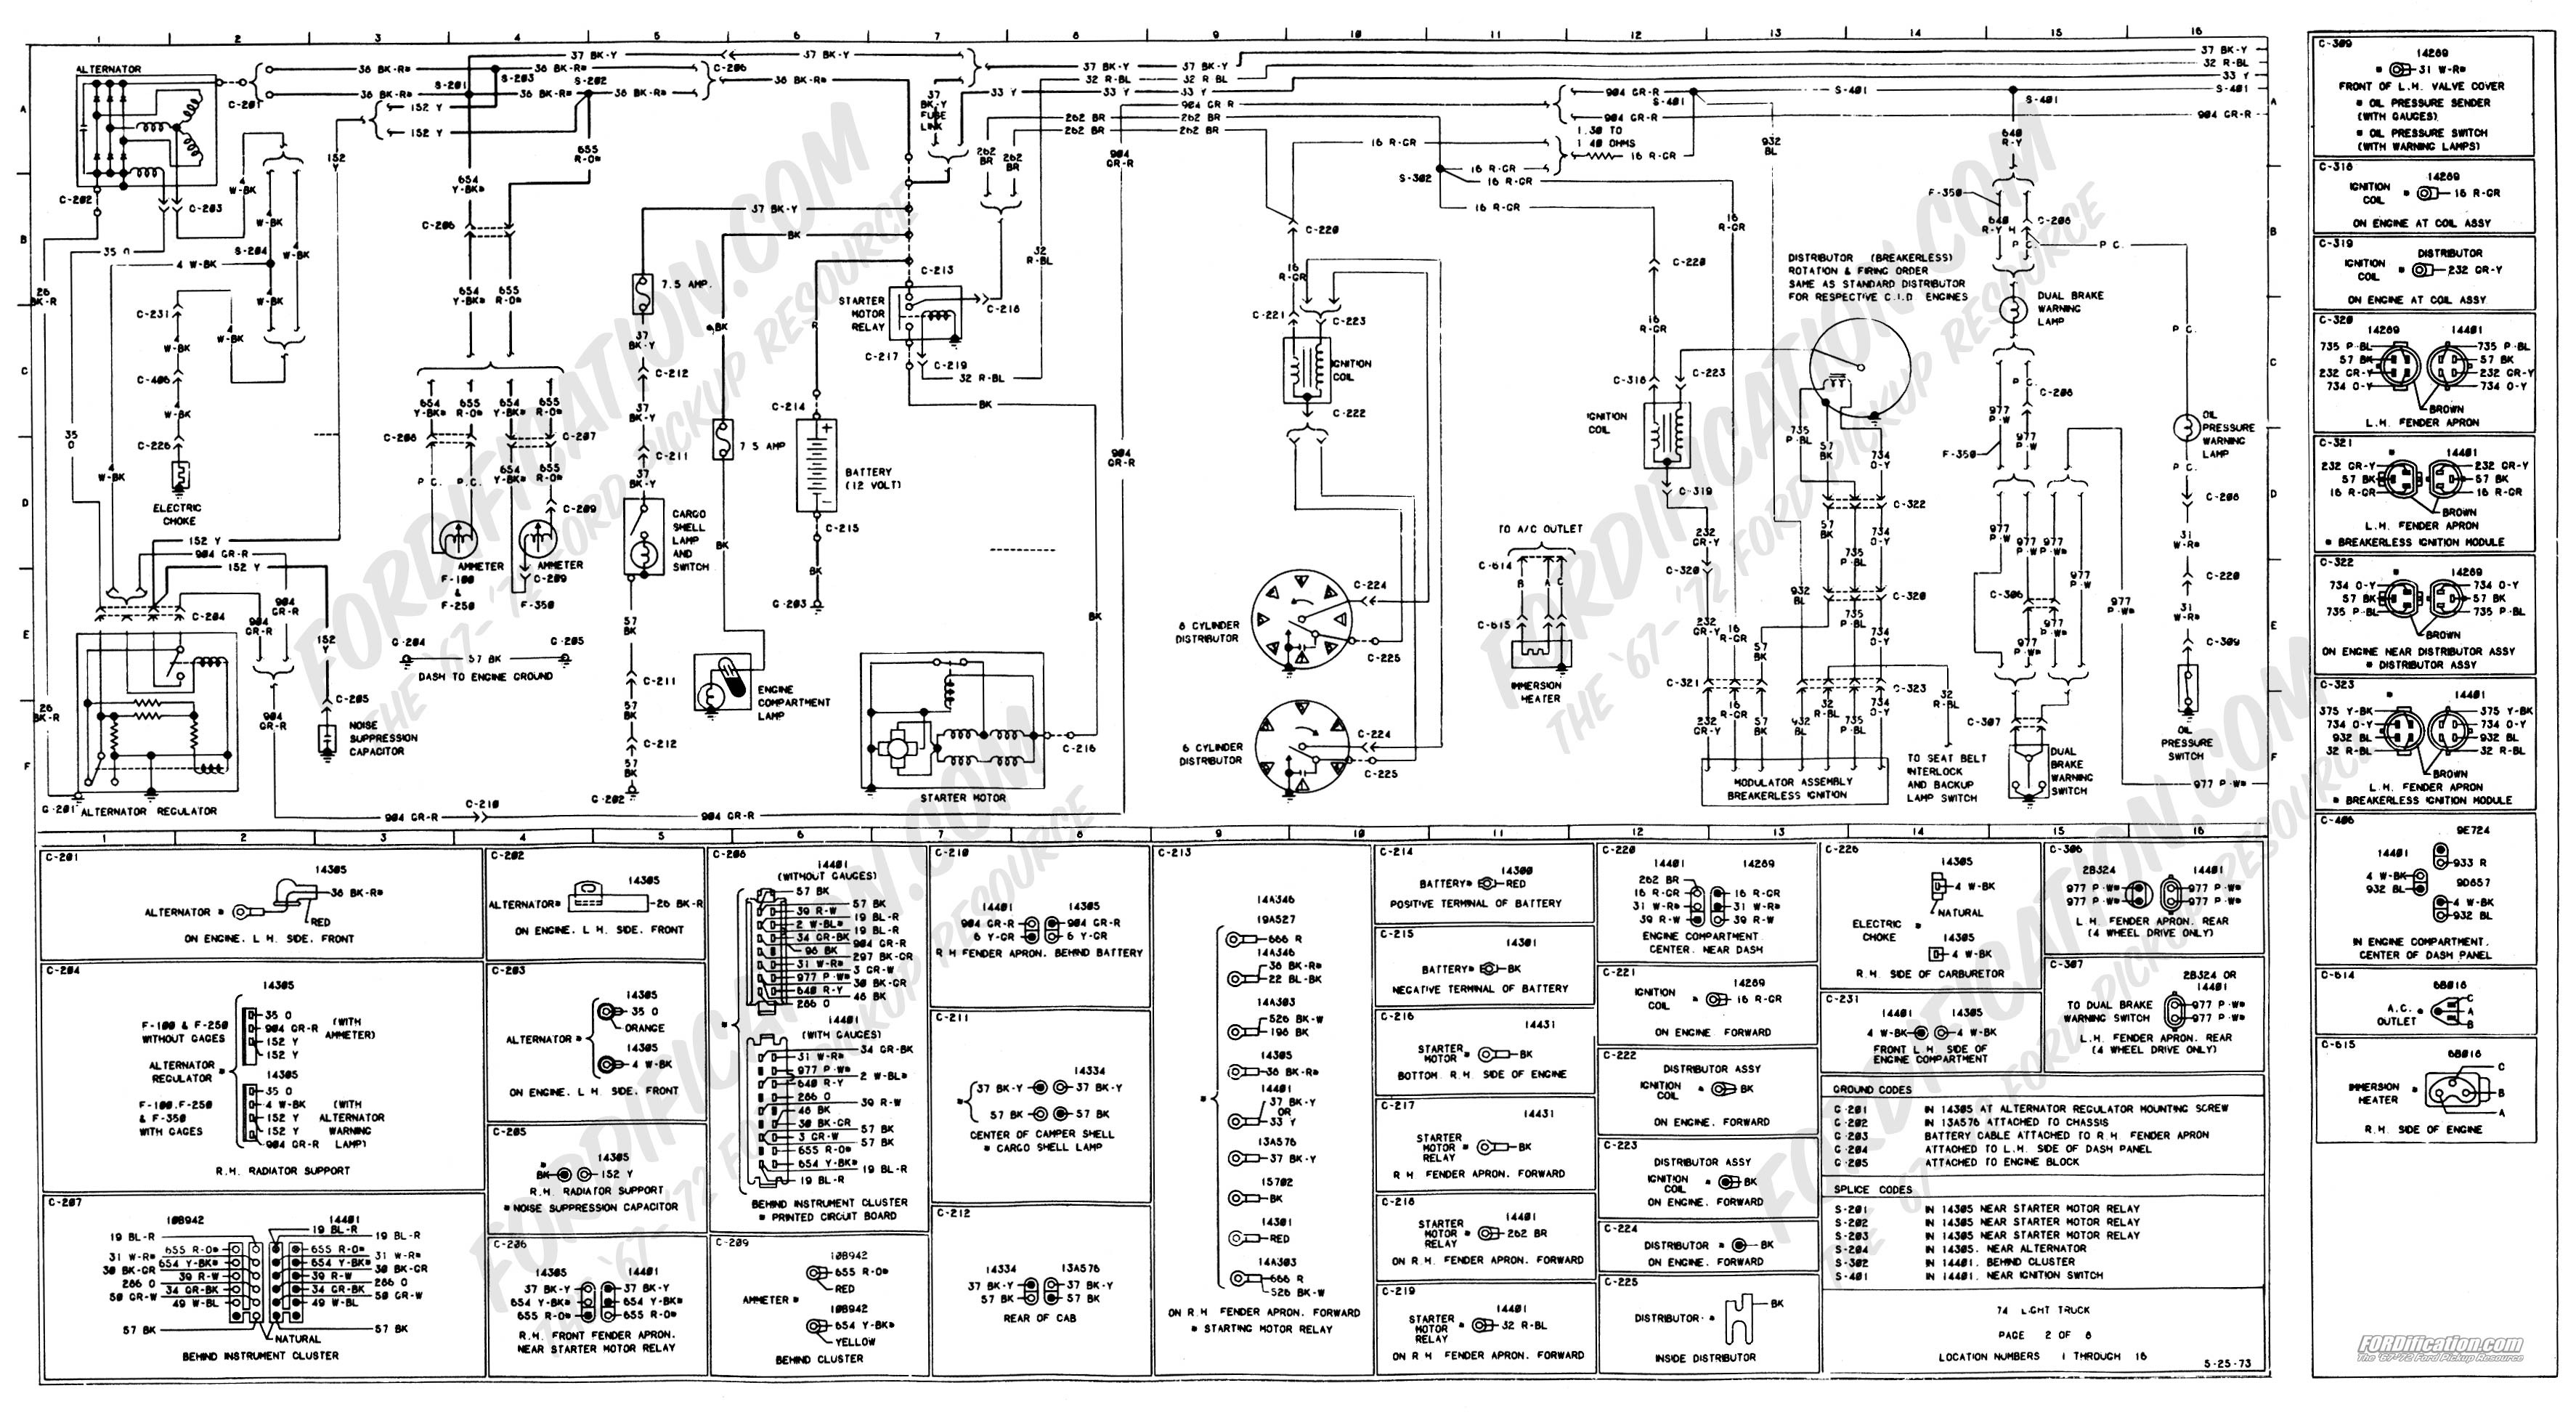 g23 wiring diagram wiring diagram all Stereo Receiver Wiring Diagram